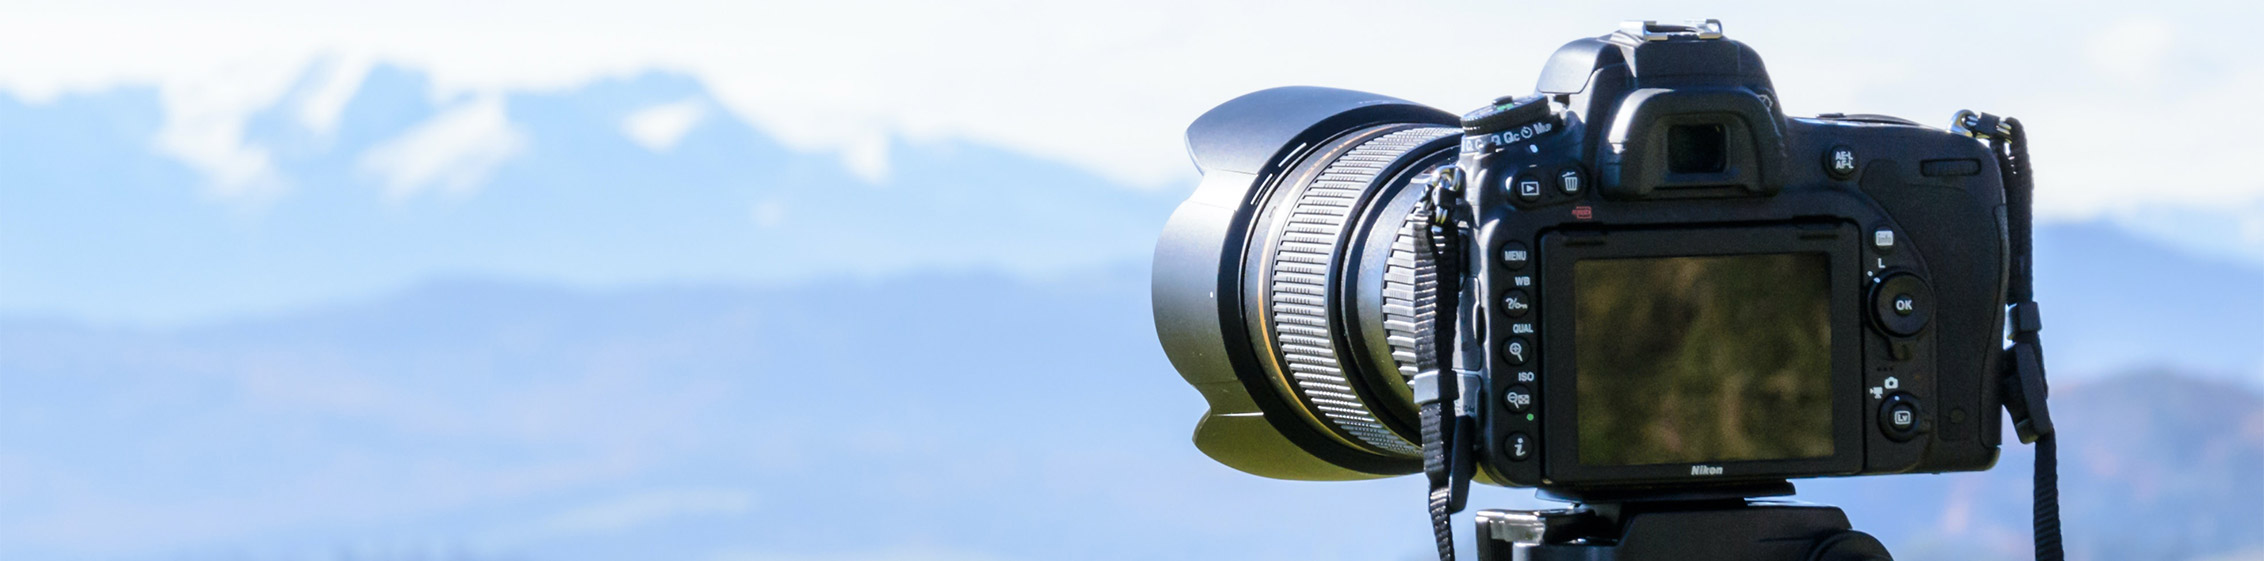 20 Great Photography Blogs to Inspire You and Your Photography